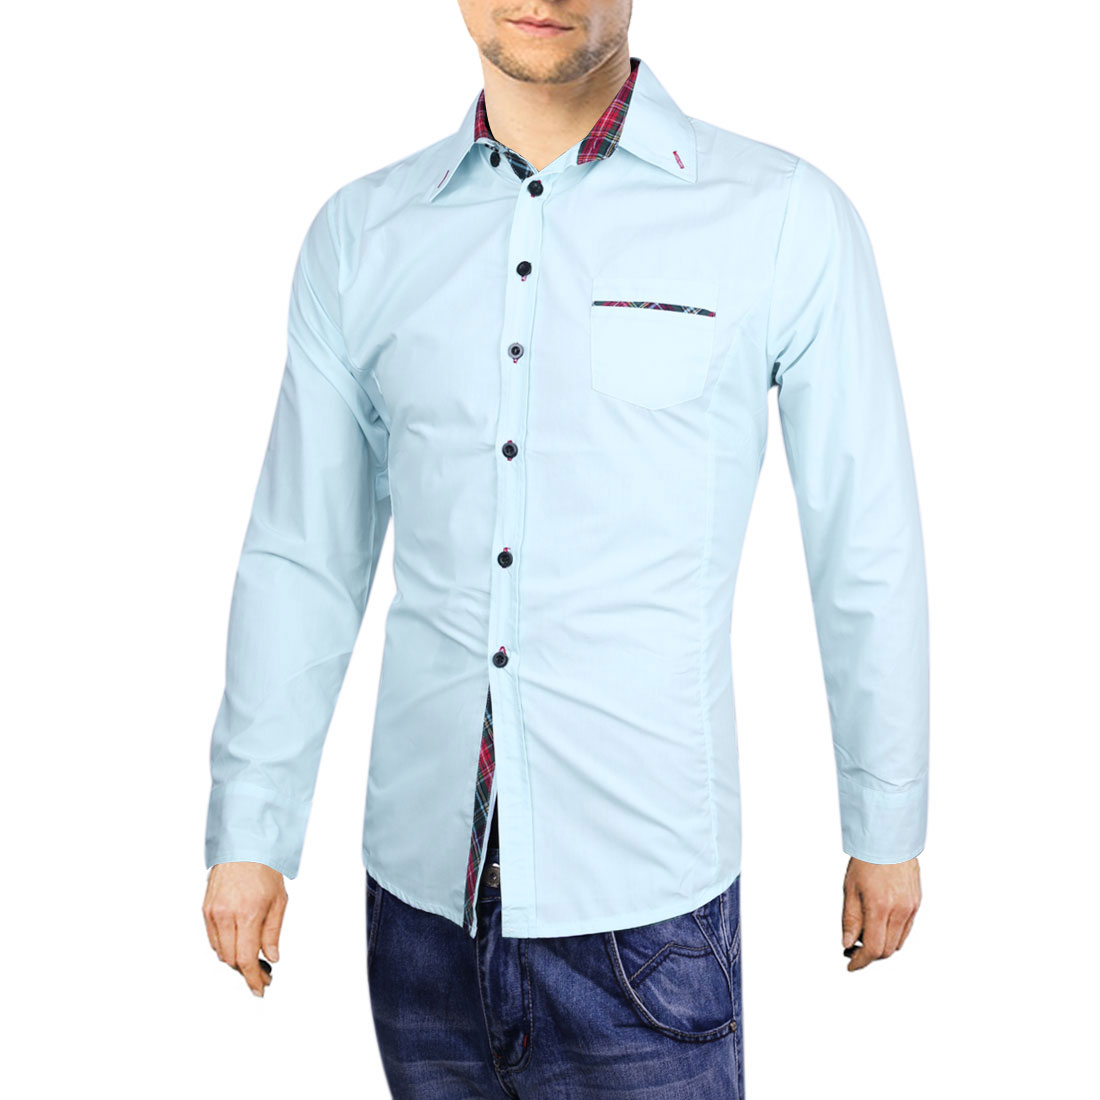 Men Point Collar Button Up Long Sleeve Round Hem Shirt Baby Blue L